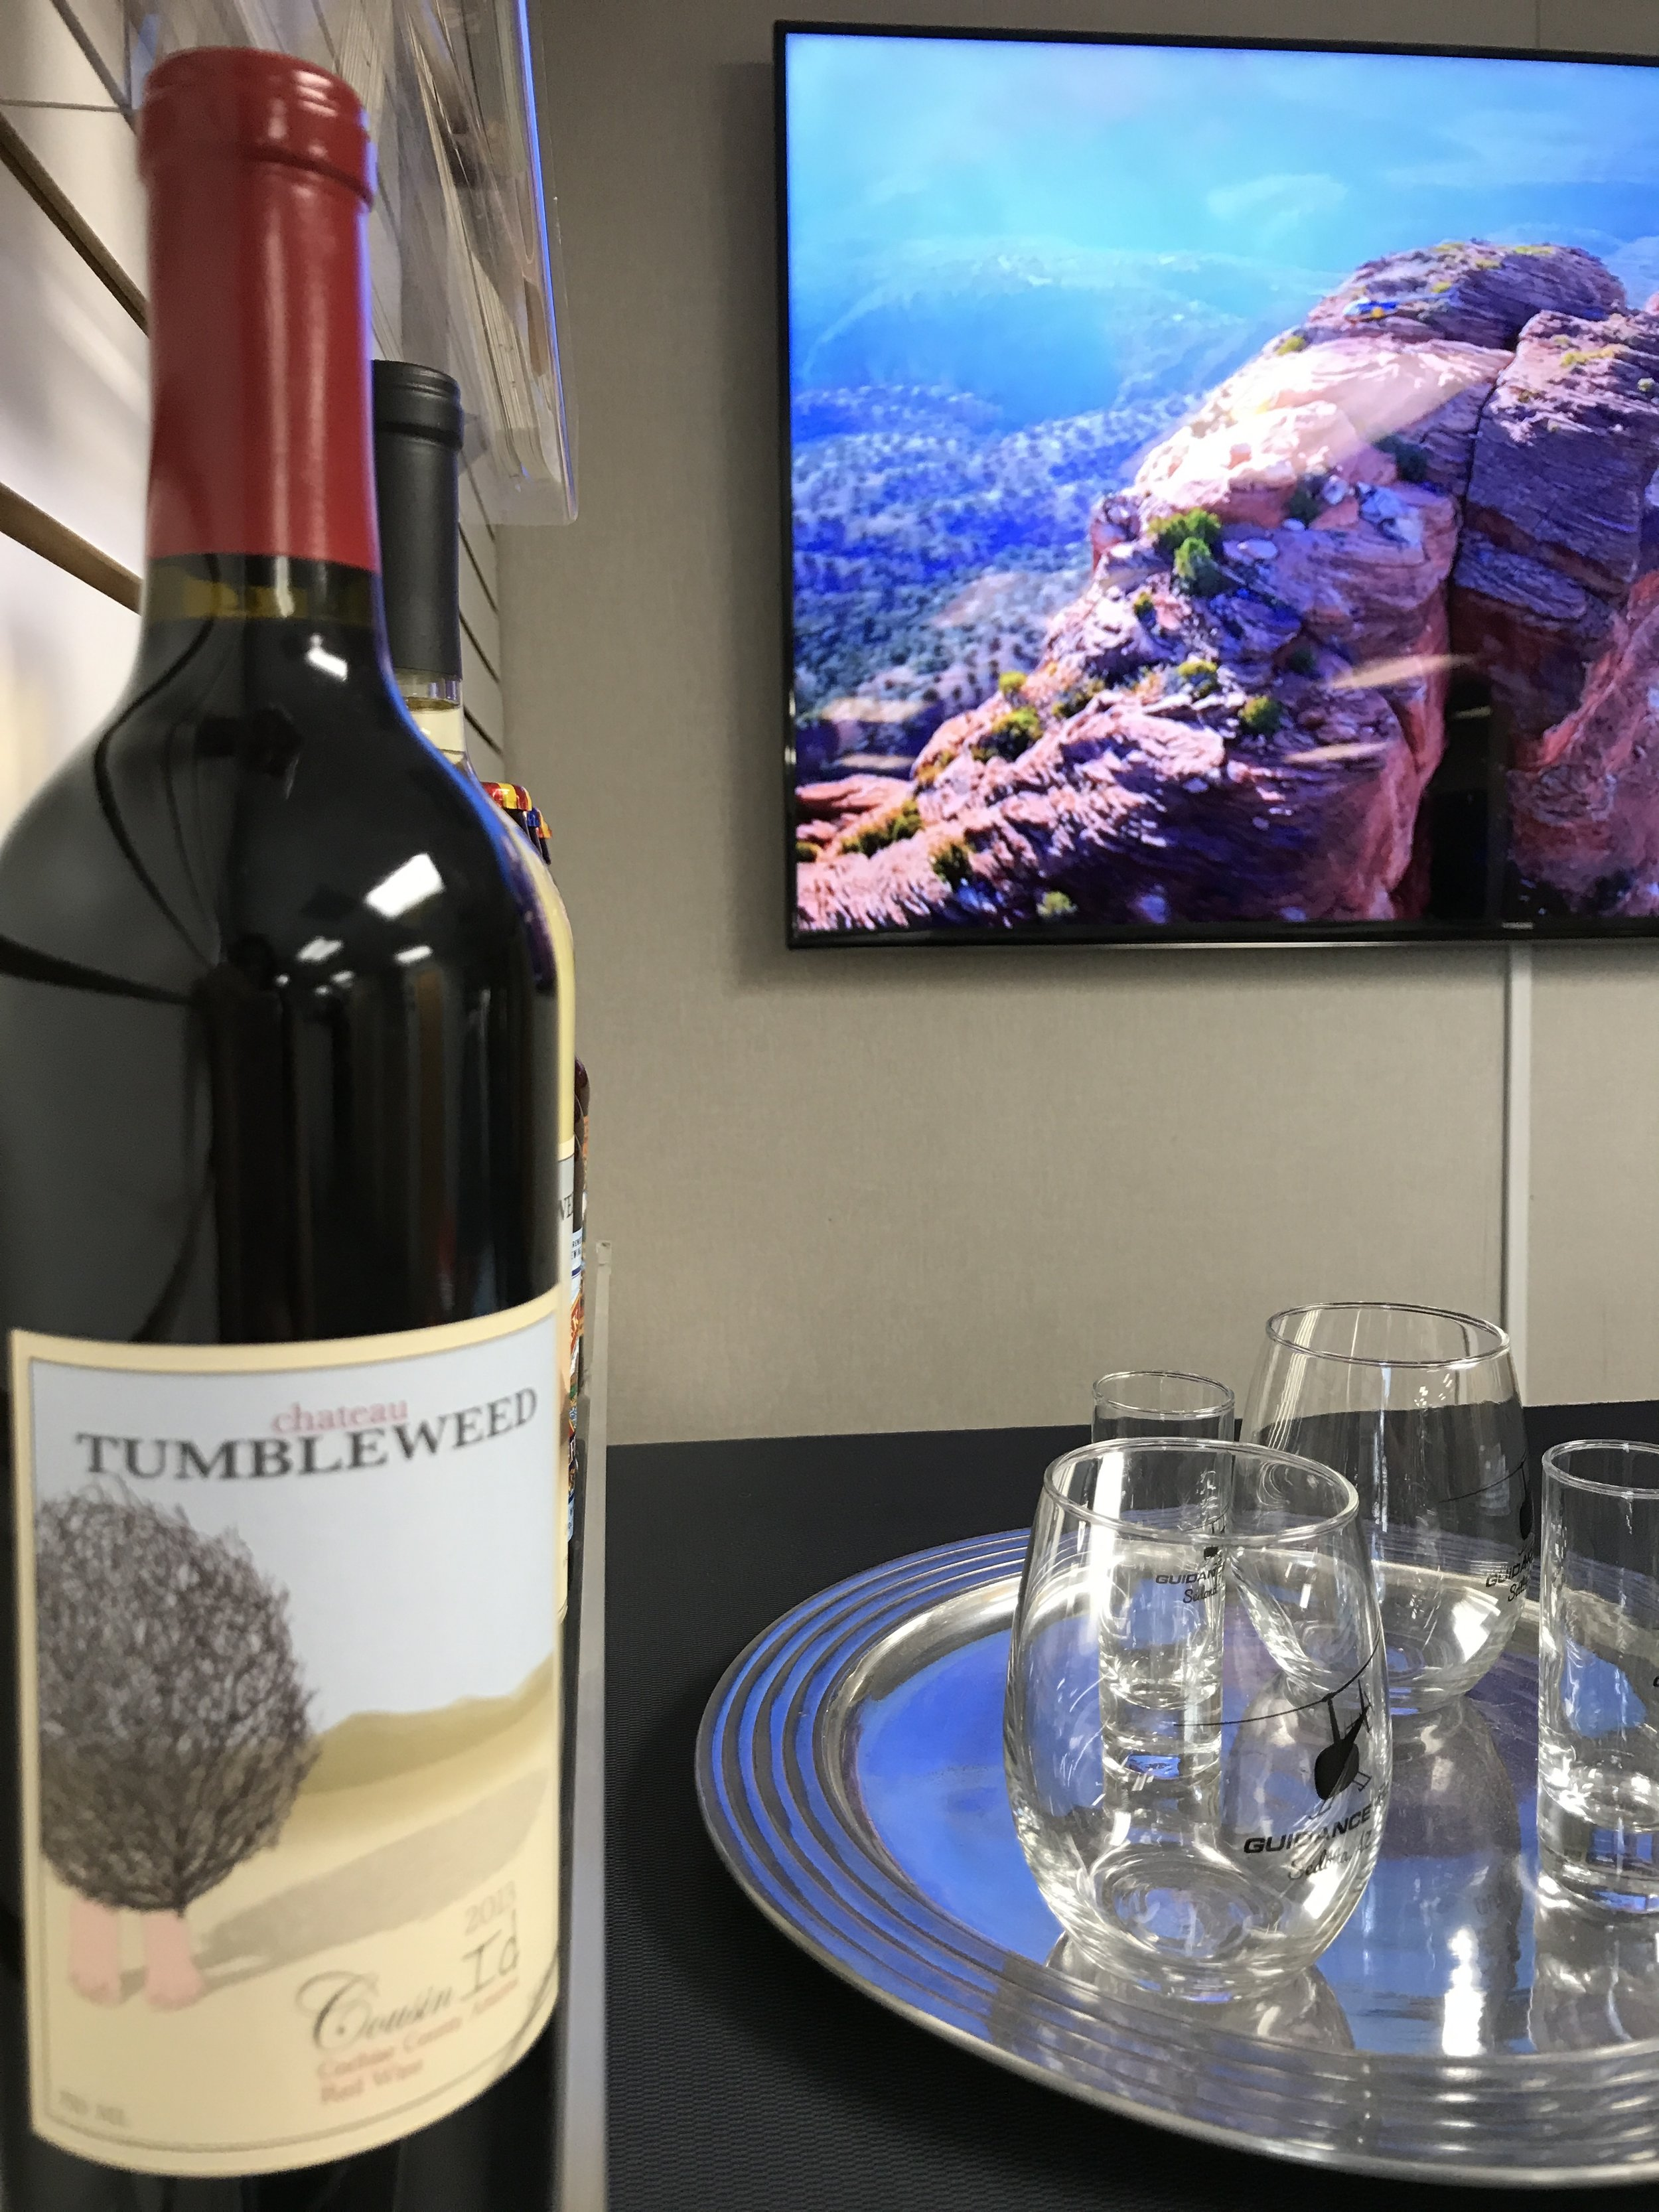 Helicopter tour and wine tasting in Sedona